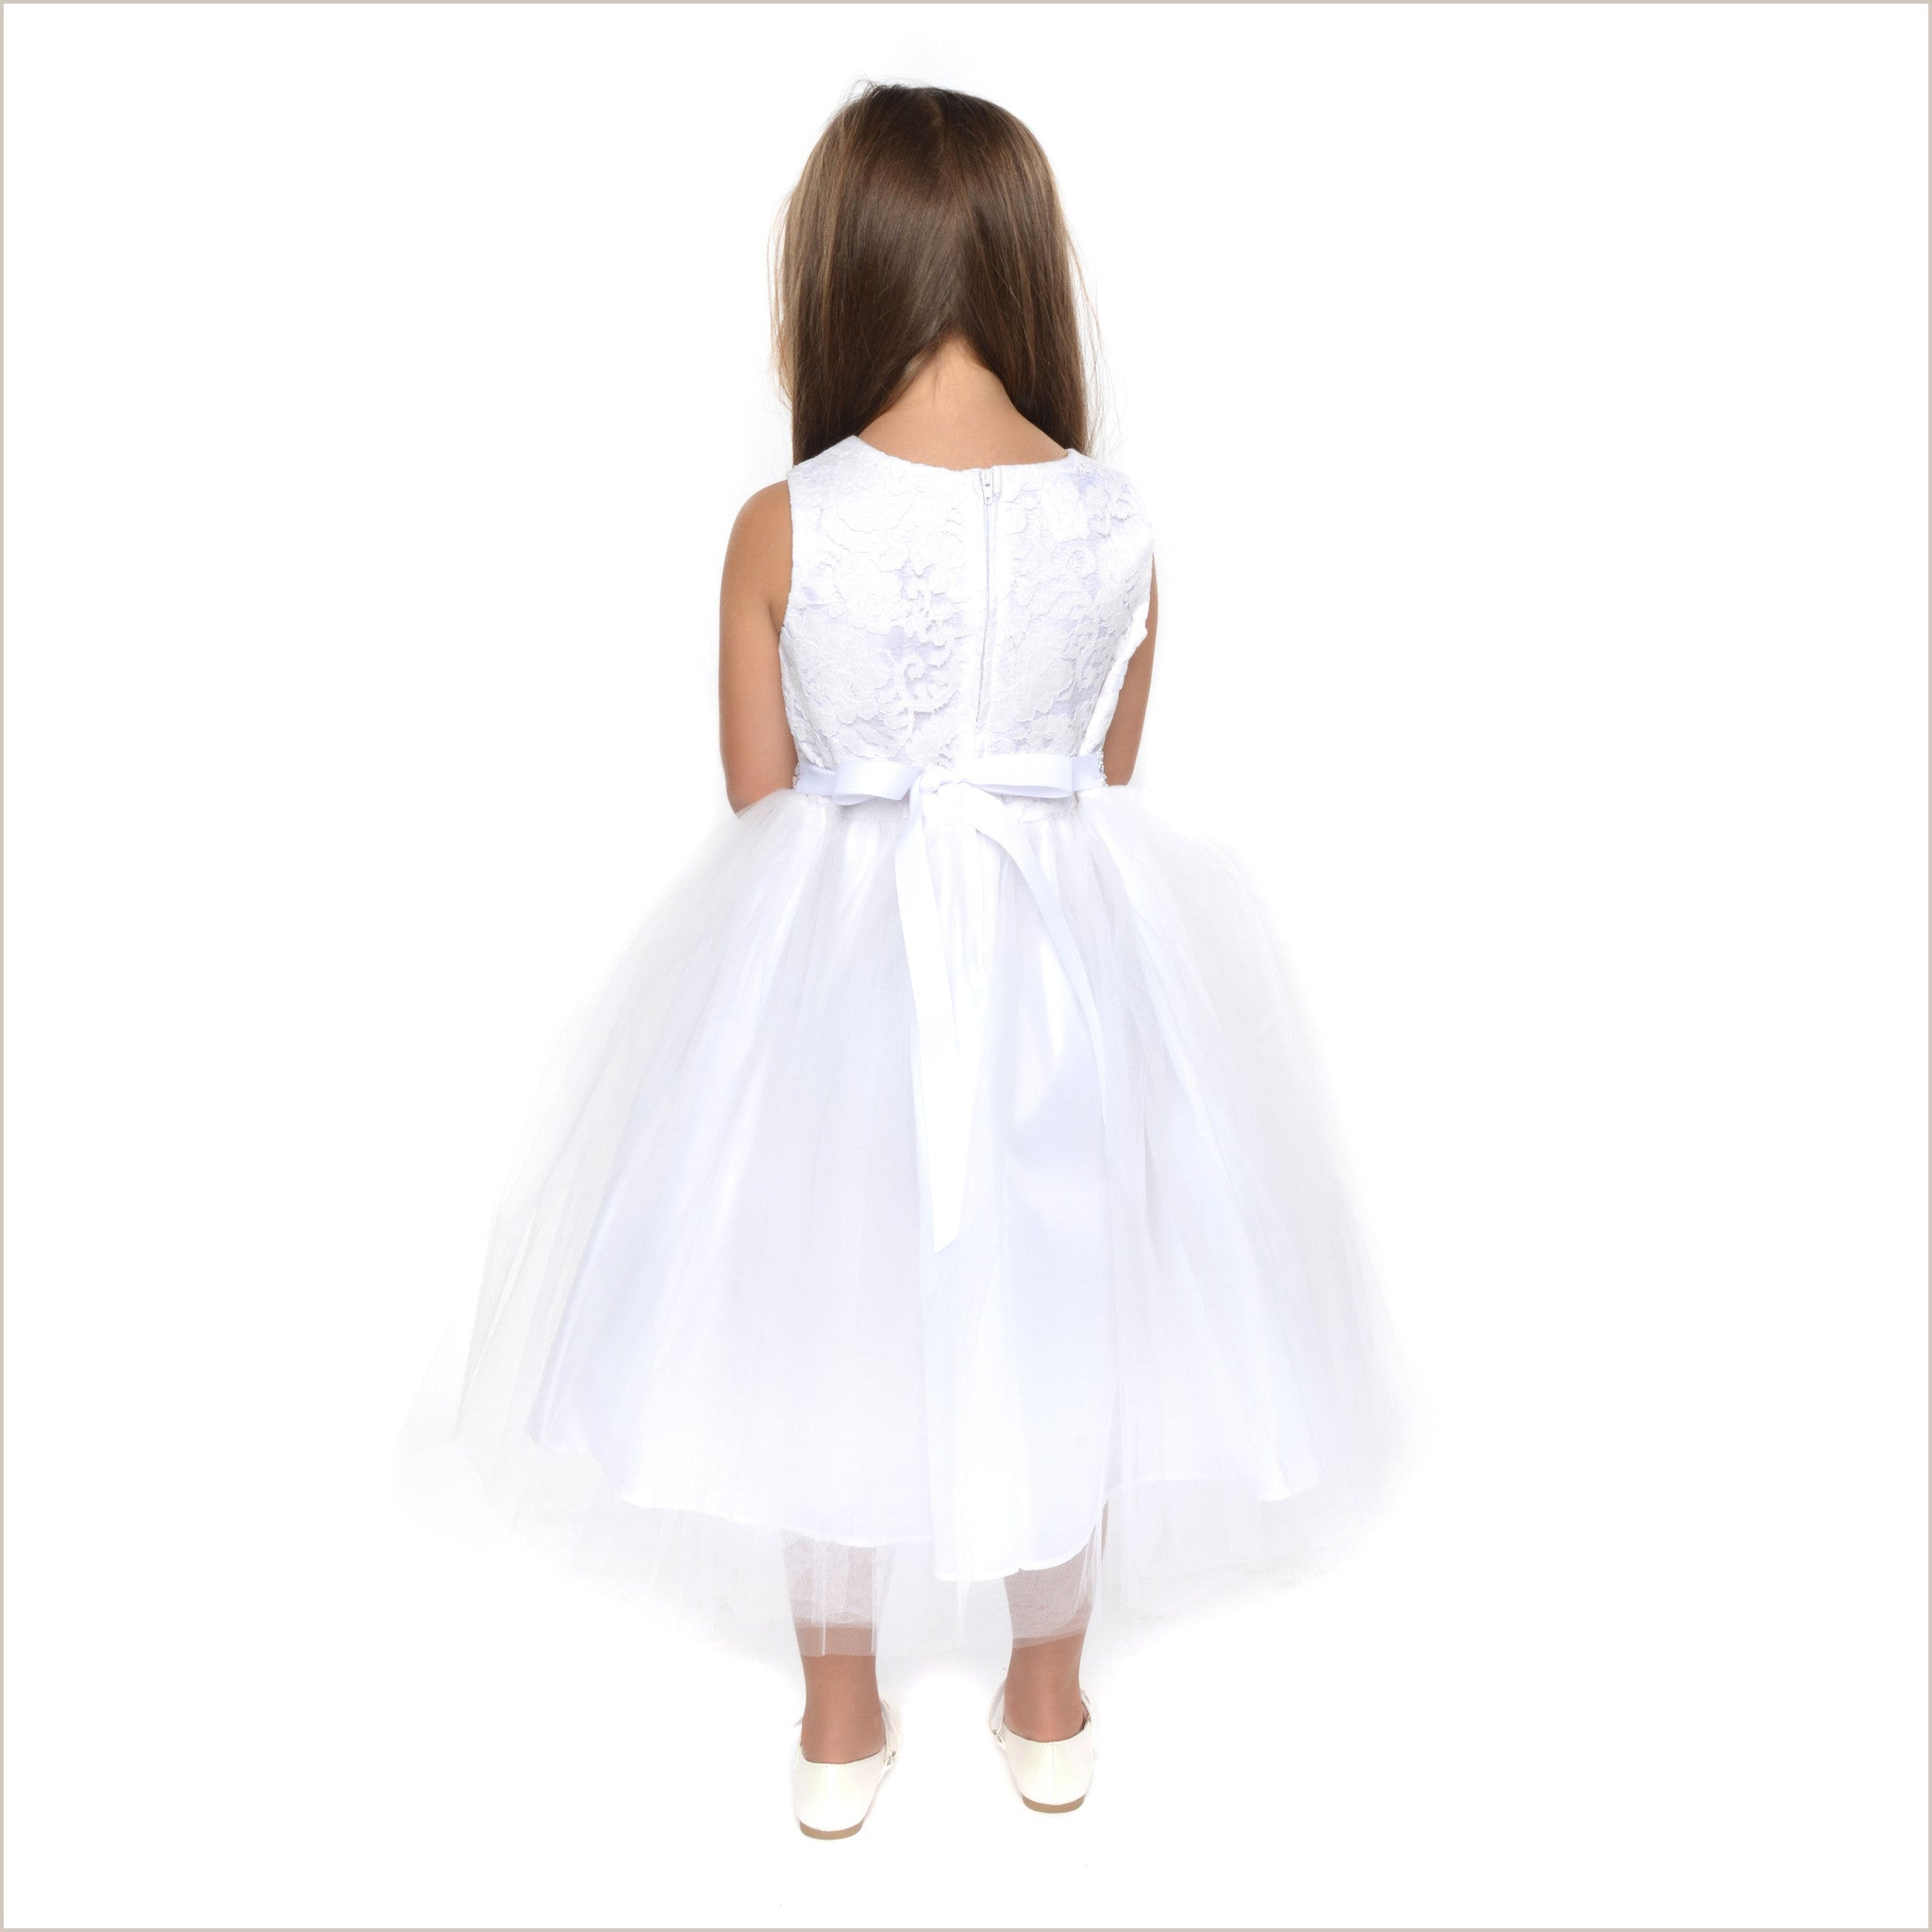 b8d141ae7a1 Juliette White Lace Flower Girl Dress SAMPLE ONE ONLY 6Y